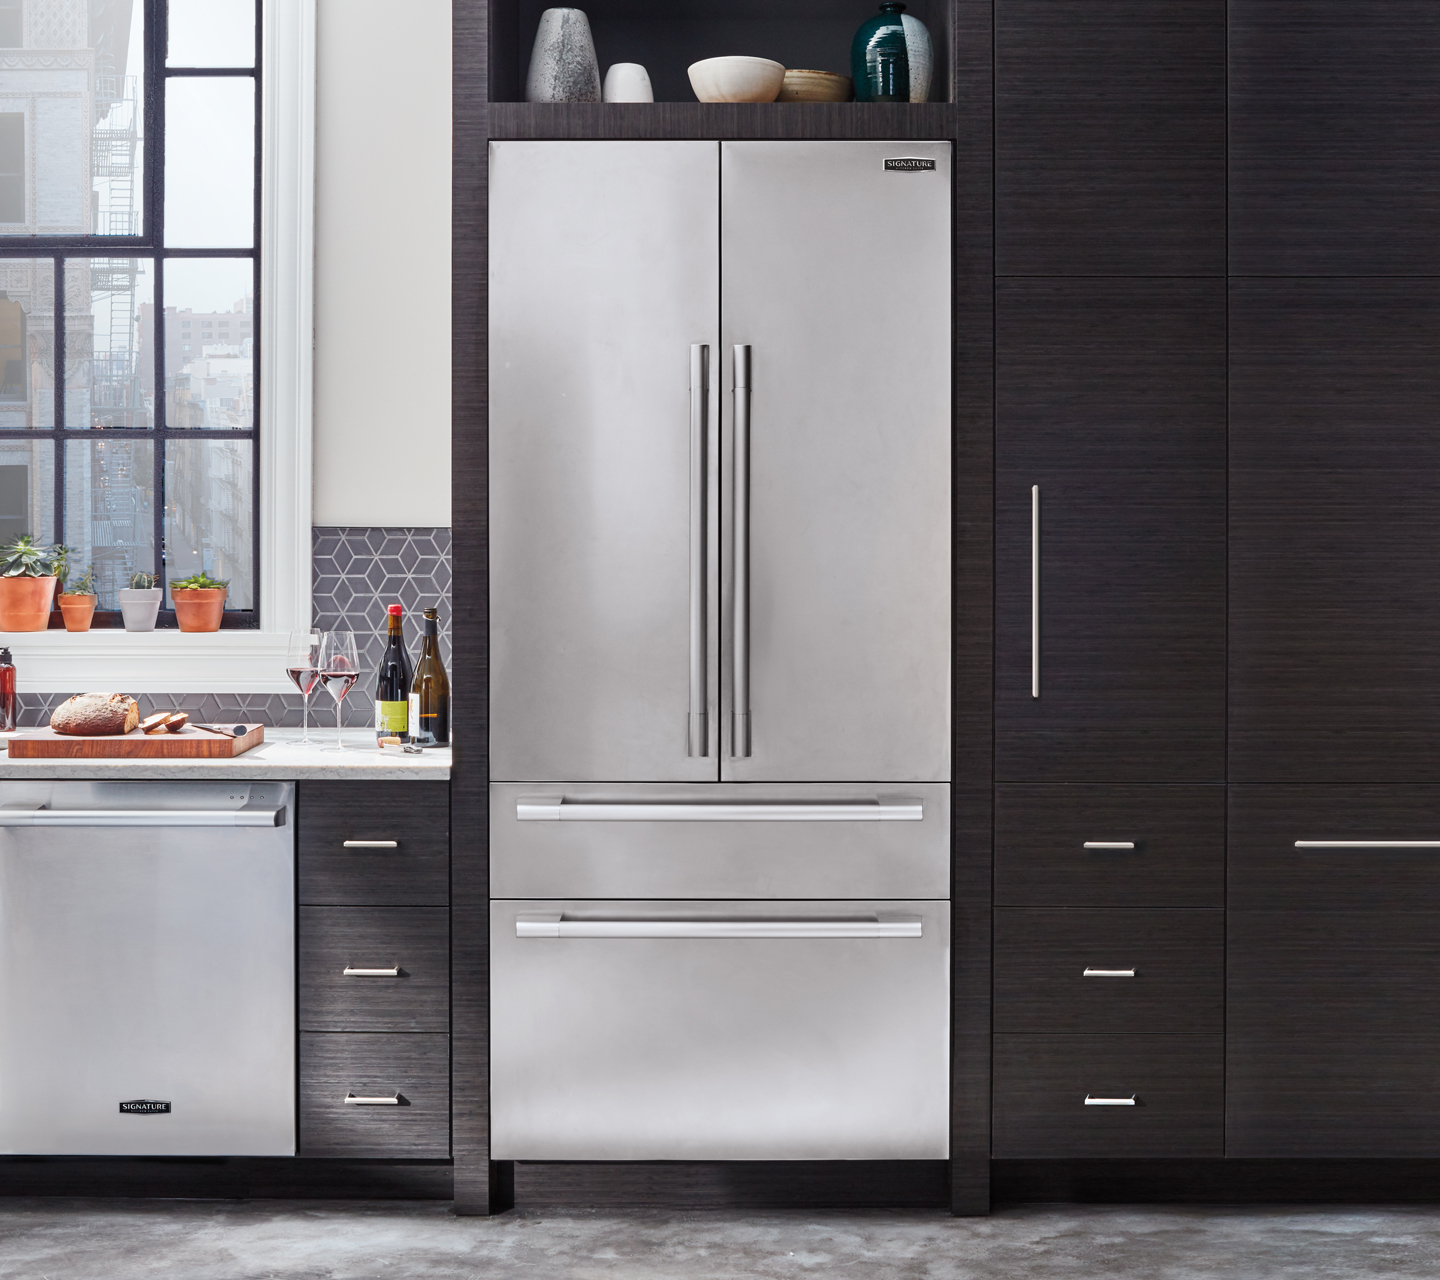 """The Cheesemakers - See our 36"""" Built-in Refrigerator"""